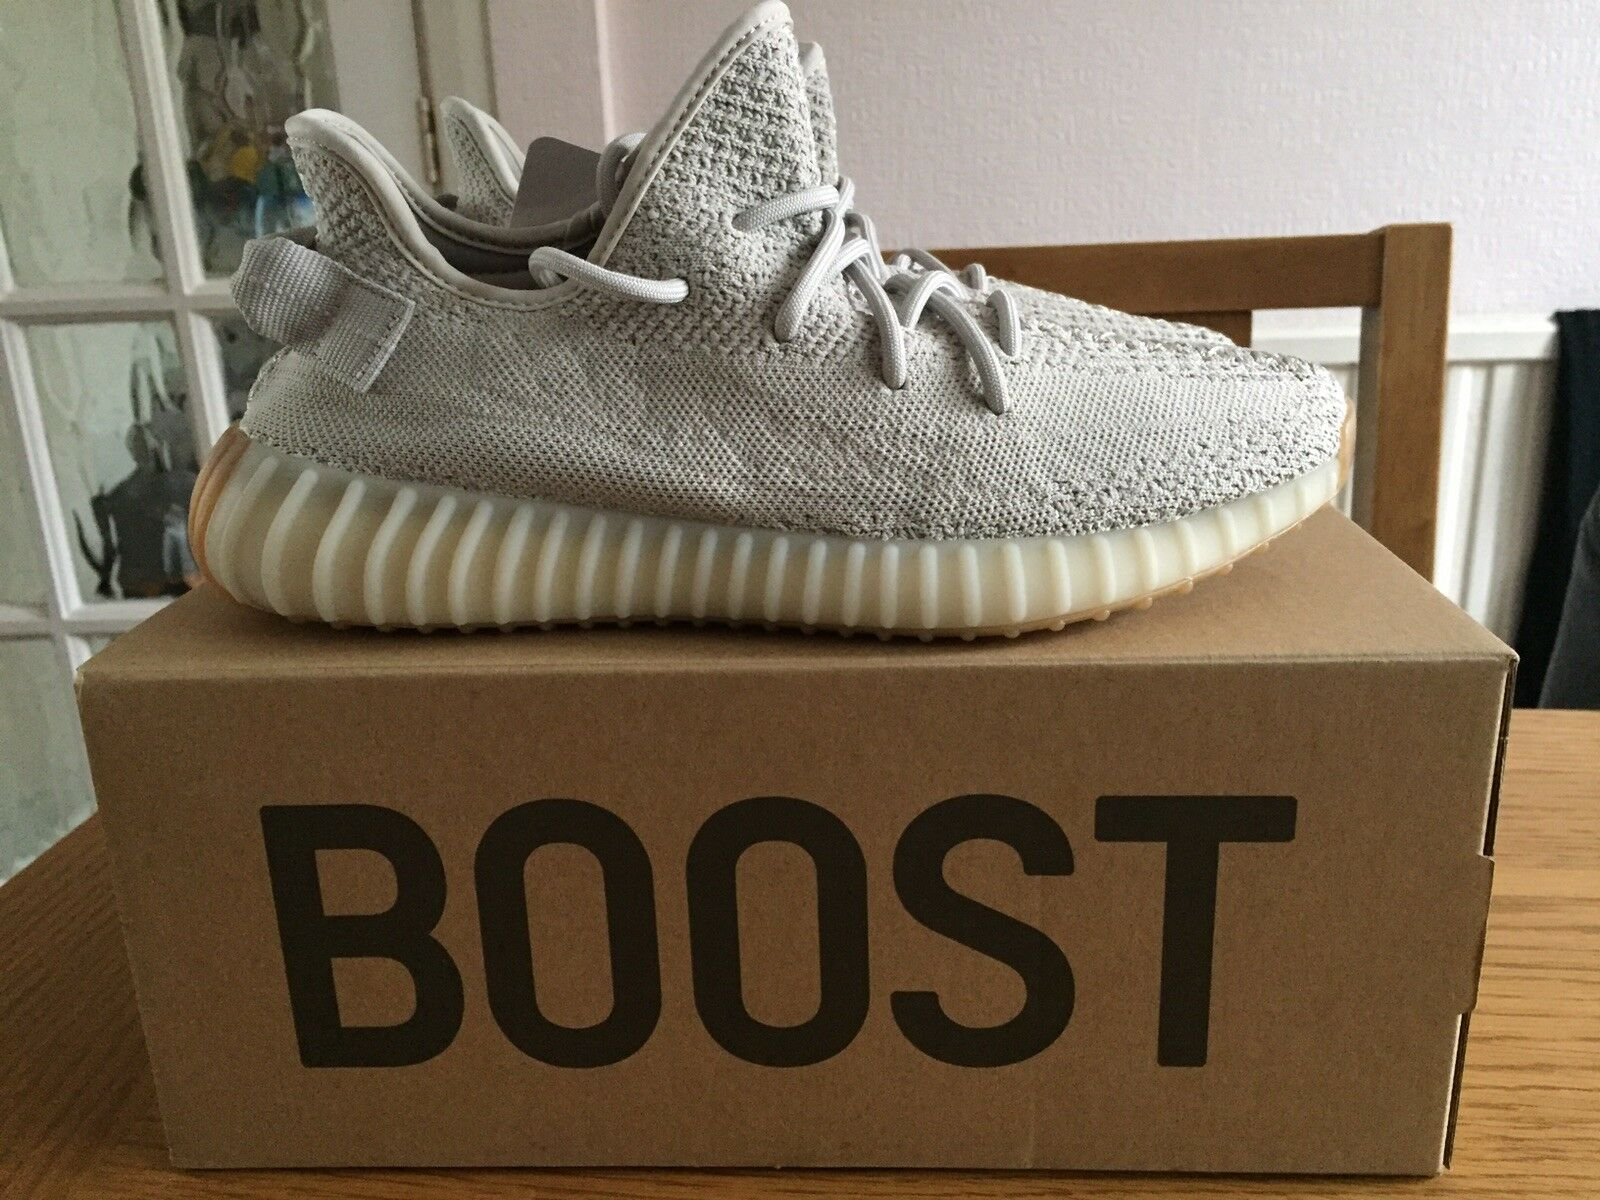 New Adidas Yeezy Boost 350 V2 Sesame US 8.5 Ultra Receipt included